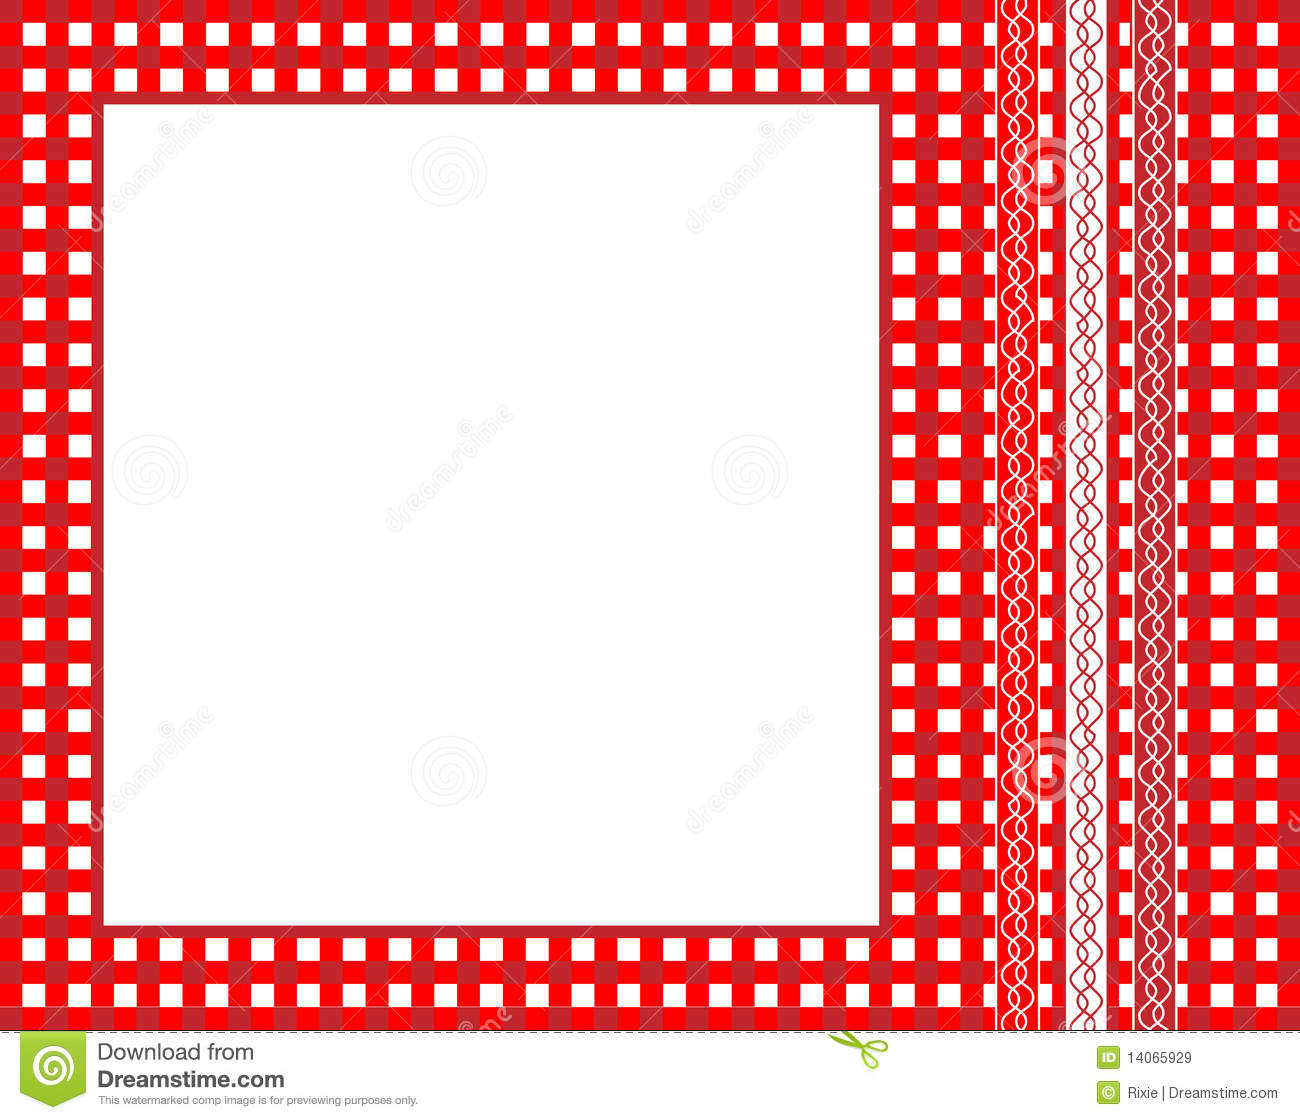 Gingham frame stock vector. Illustration of country, picnic - 14065929